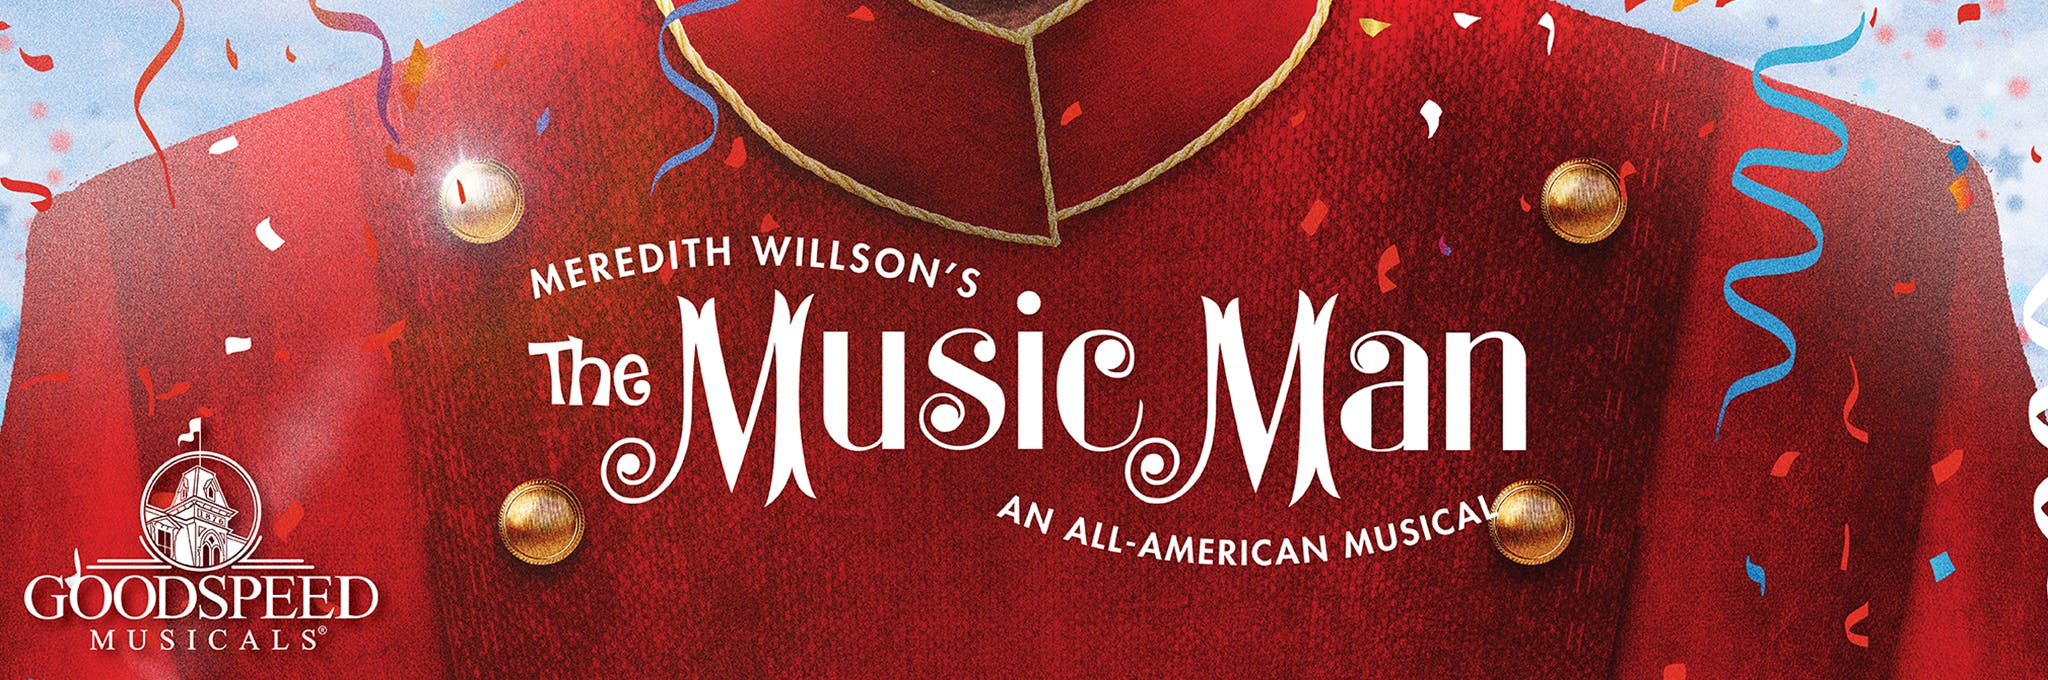 The Music Man Logo